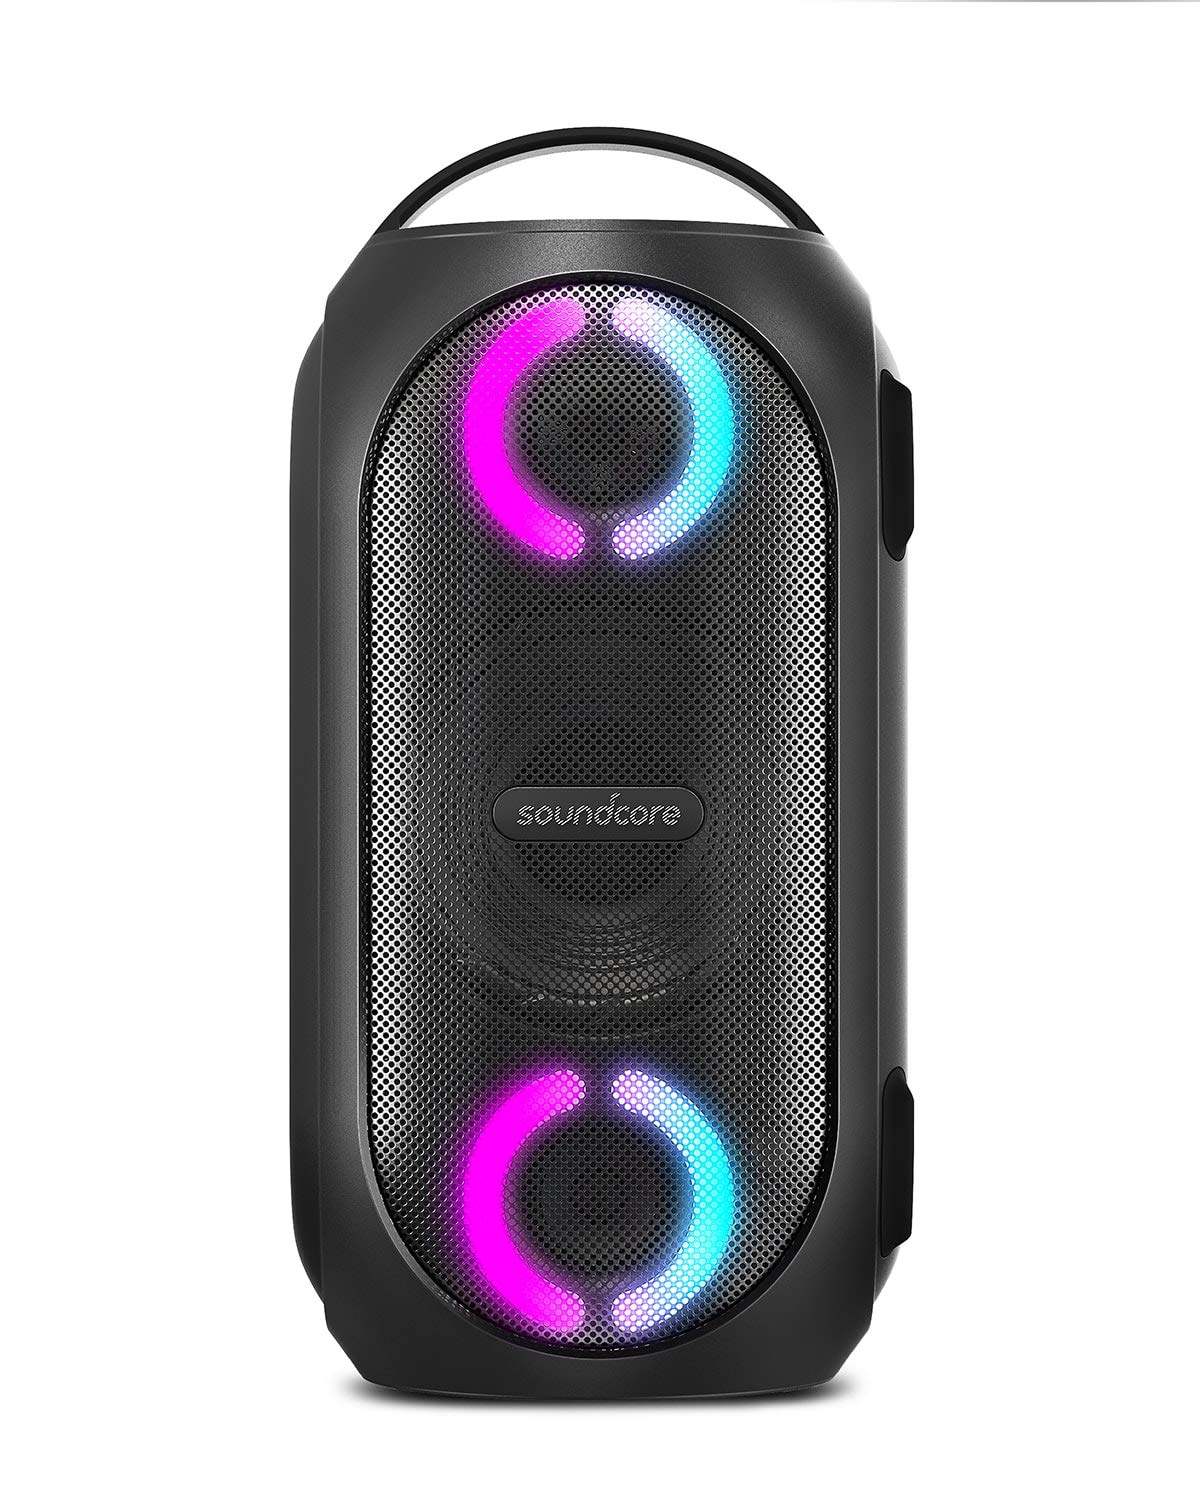 Anker Soundcore Rave Mini Portable Party Speaker, Huge 80W Sound, Fully Waterproof, USB Charger, Beat-Driven Light Show, App, Party Games, All-Weather Speaker for Outdoor, Tailgating, Beach, Camping by soundcore